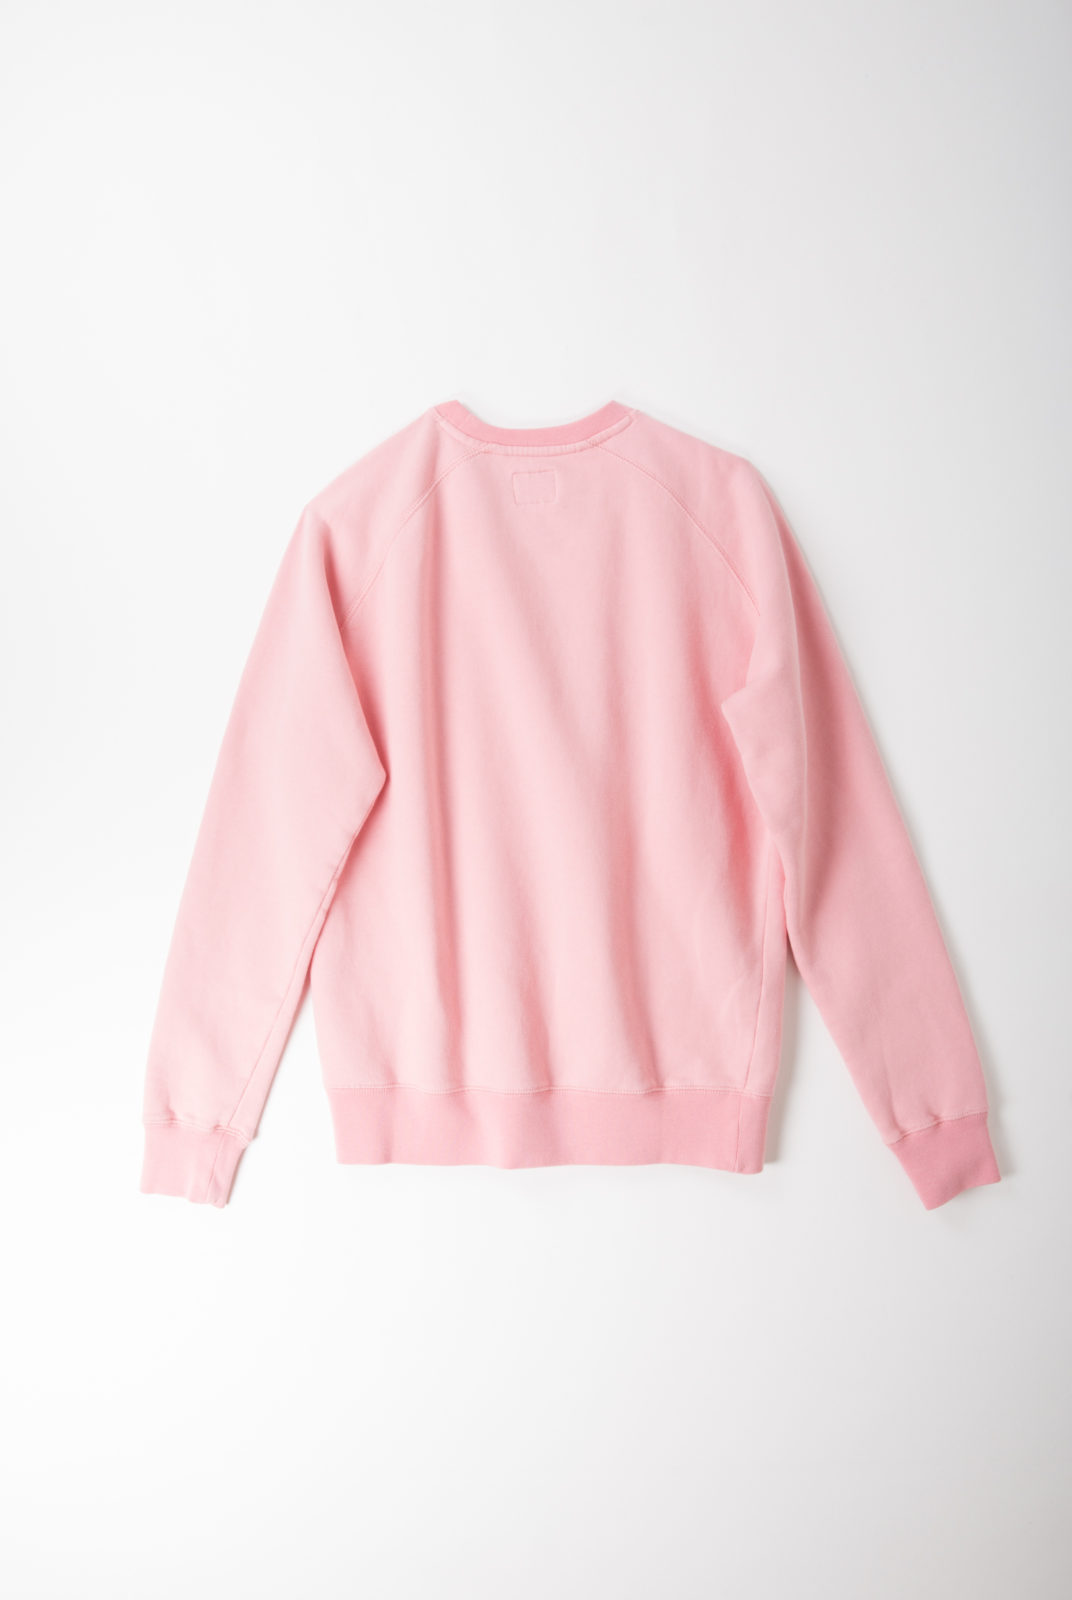 sweat, coton, rose, encolure ronde, manches longues, holiday